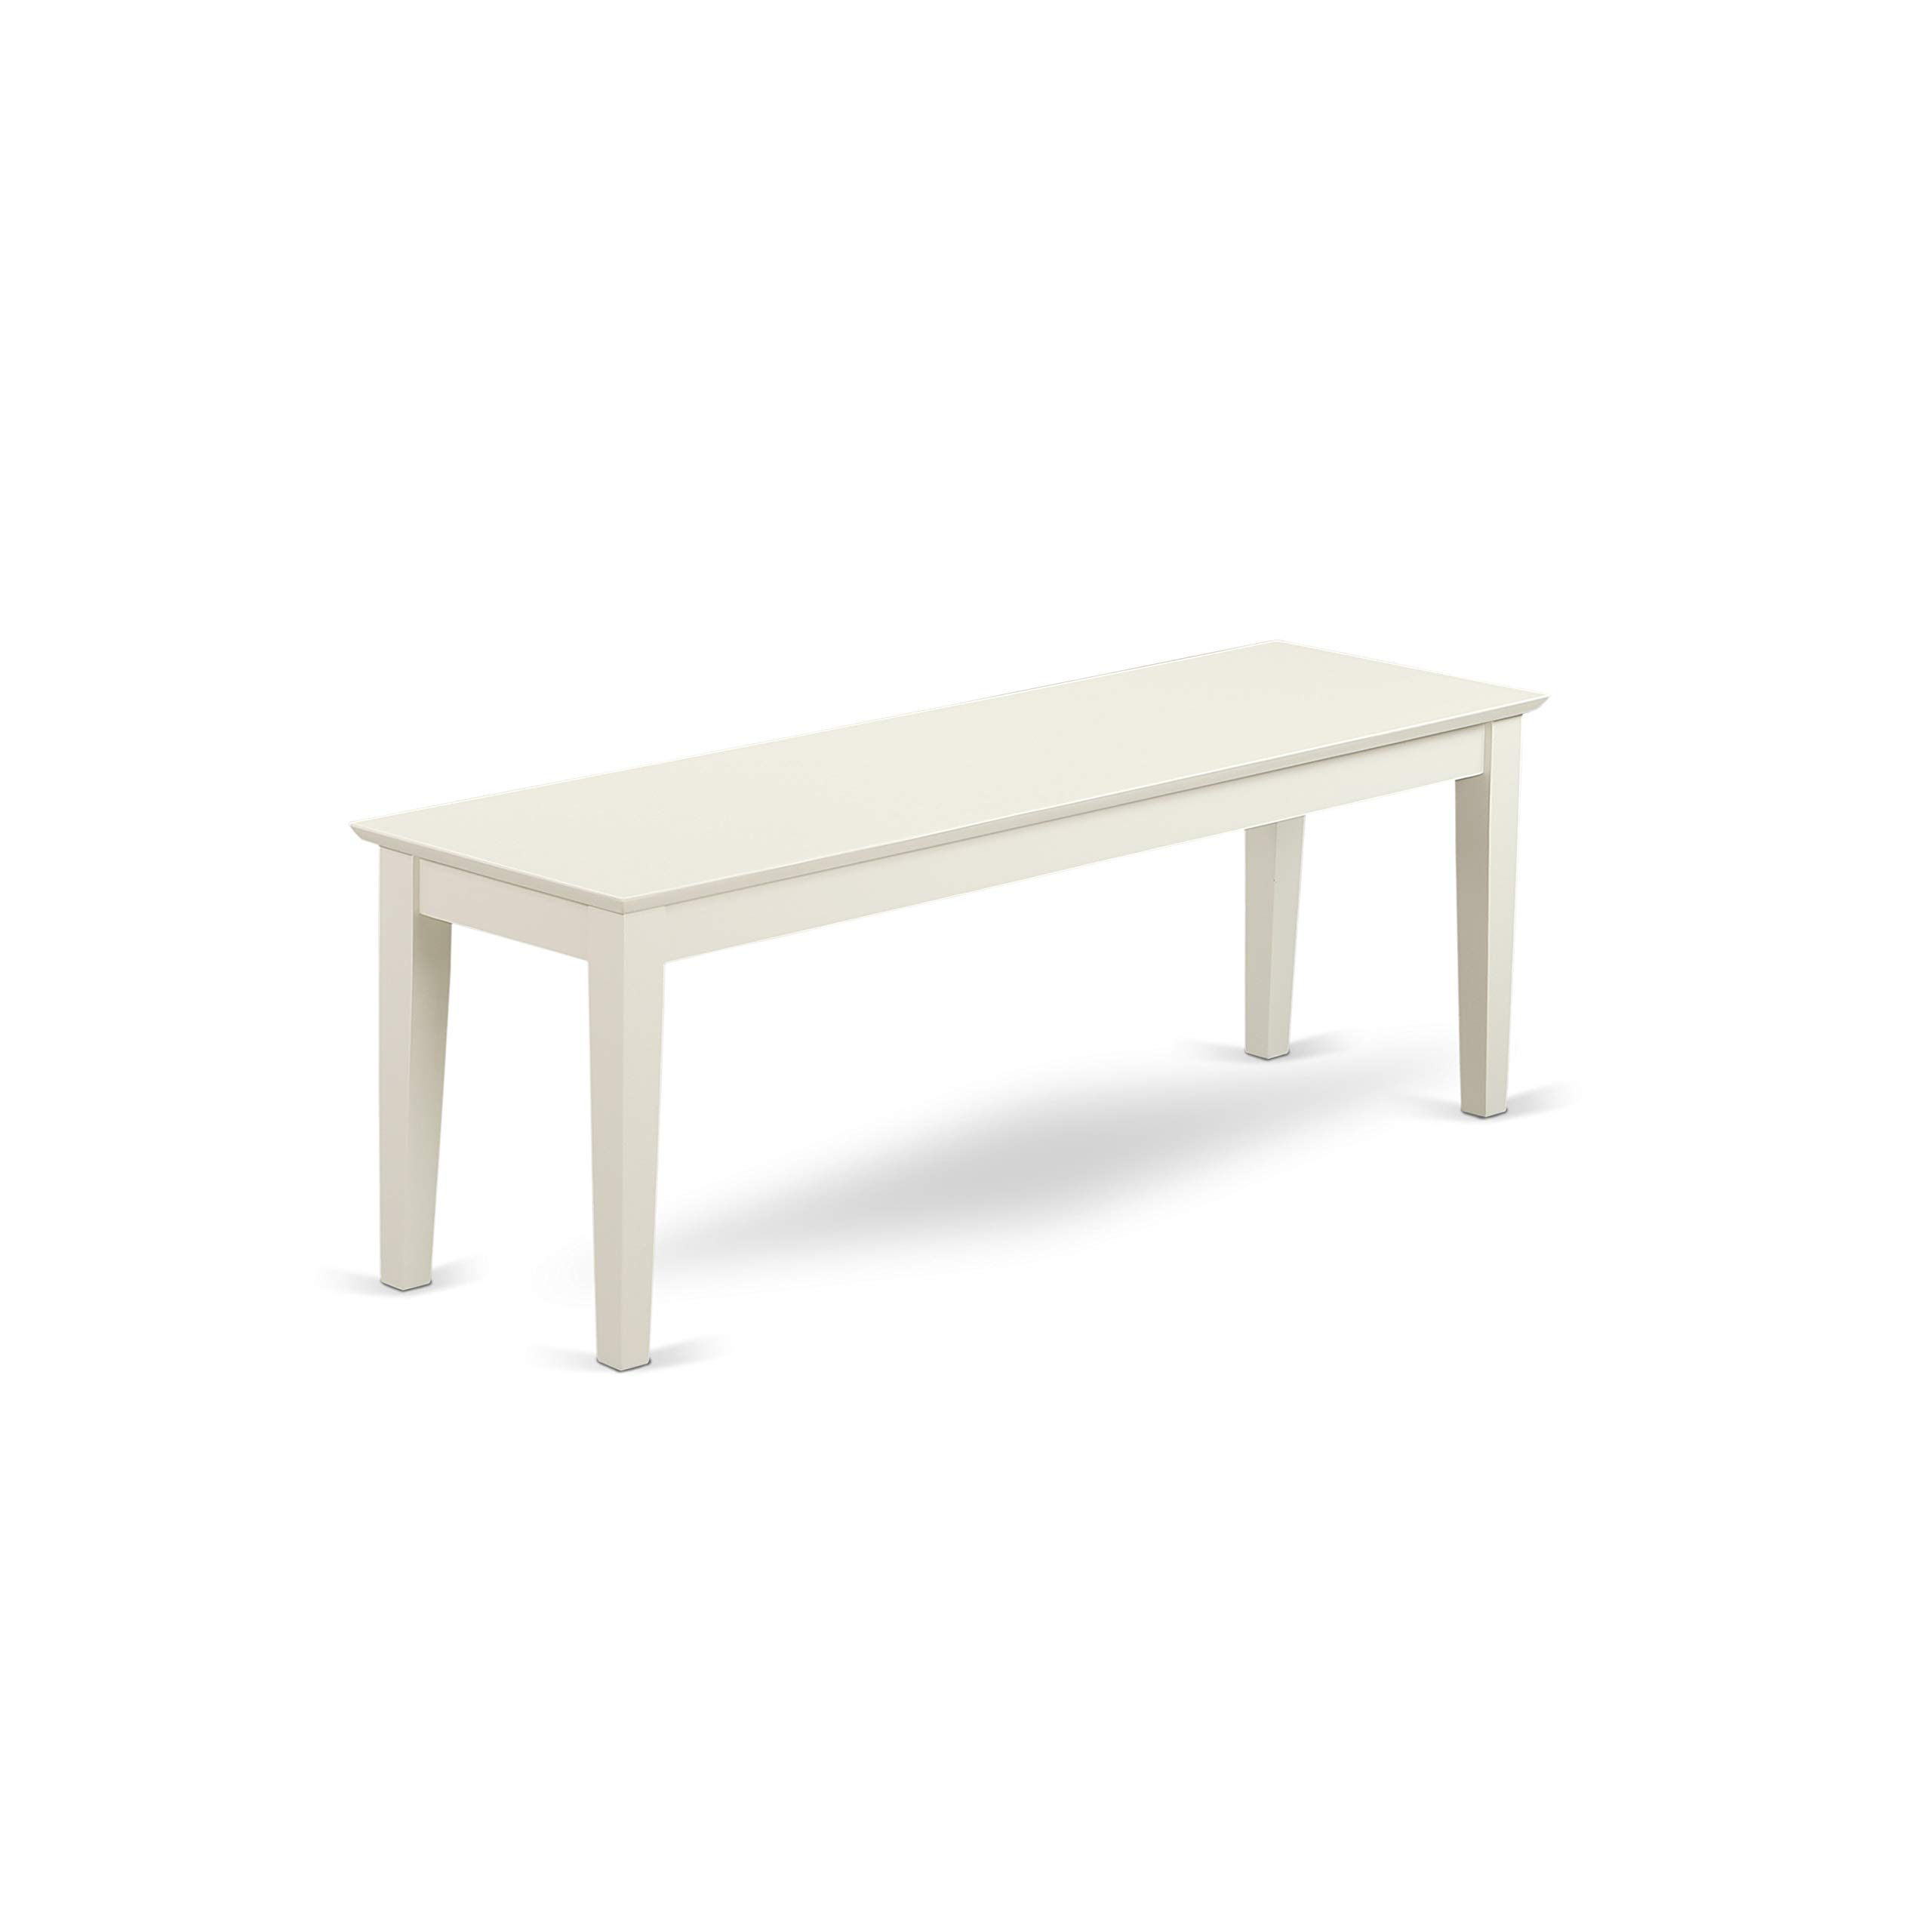 East West Furniture CAB-LWH-W Capri bench, Linen White by East West Furniture